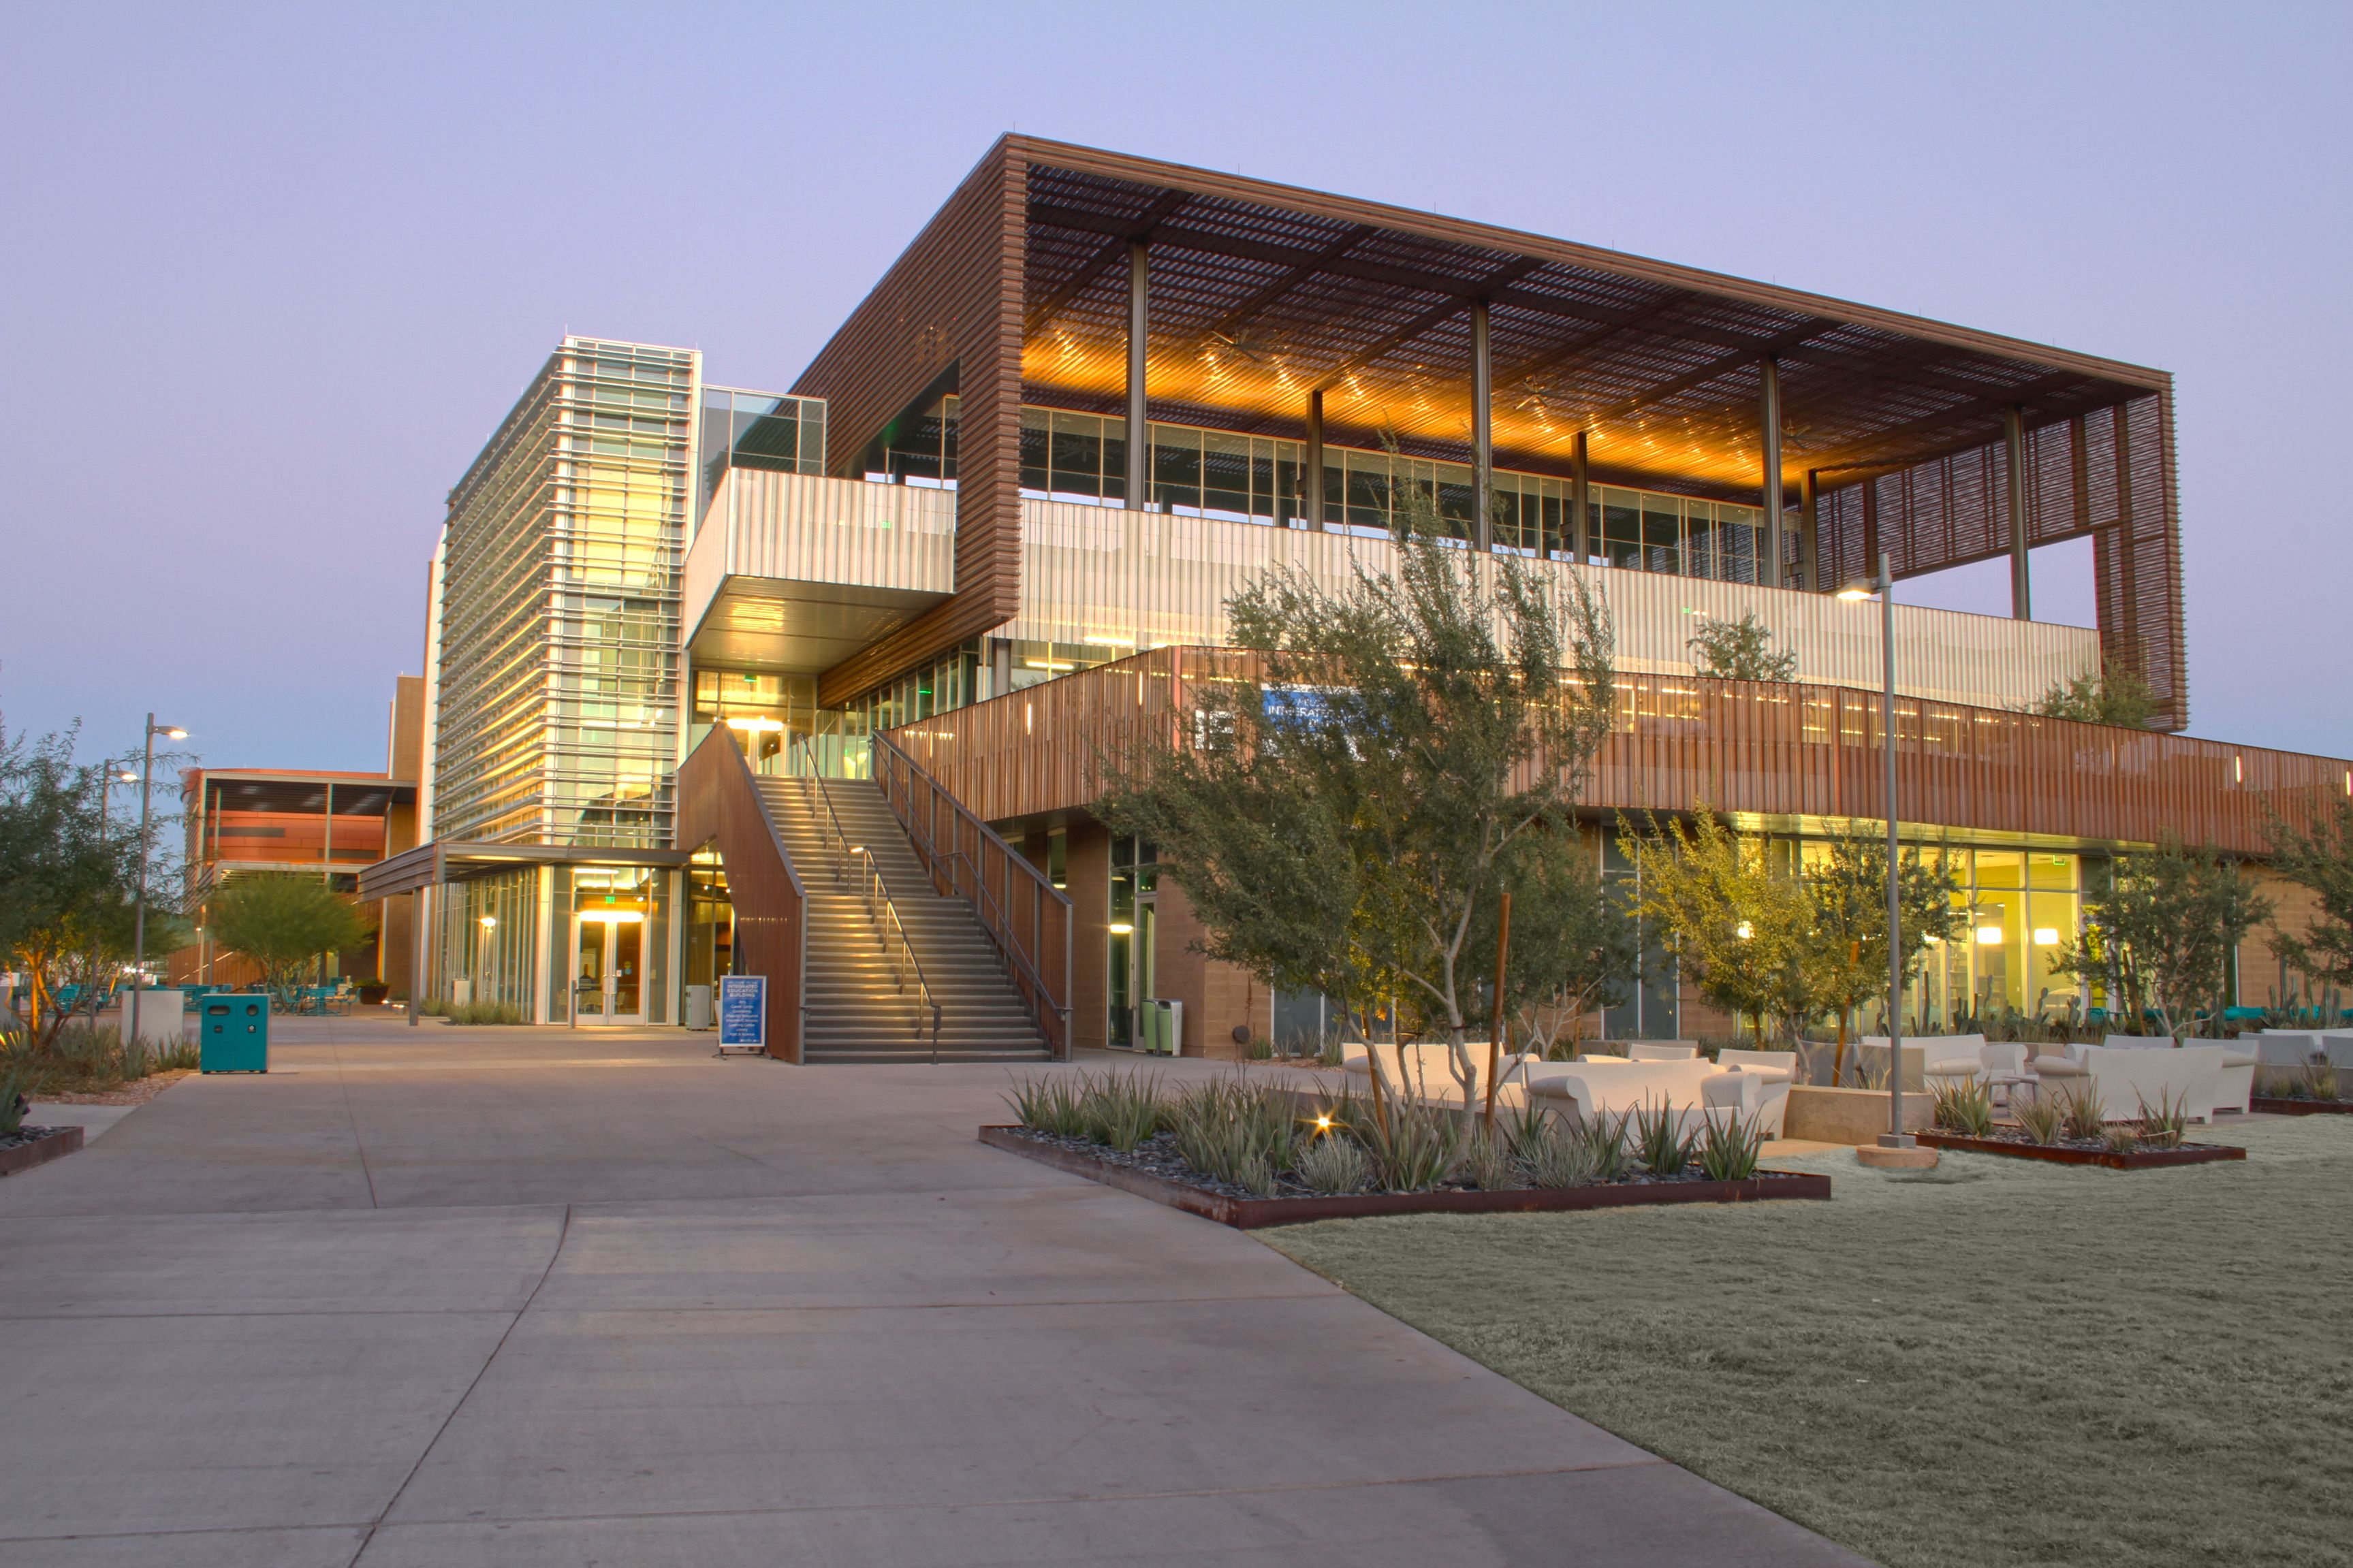 Gateway Community College S Ieb Building At Sunrise Gateway Community College House Styles Mansions